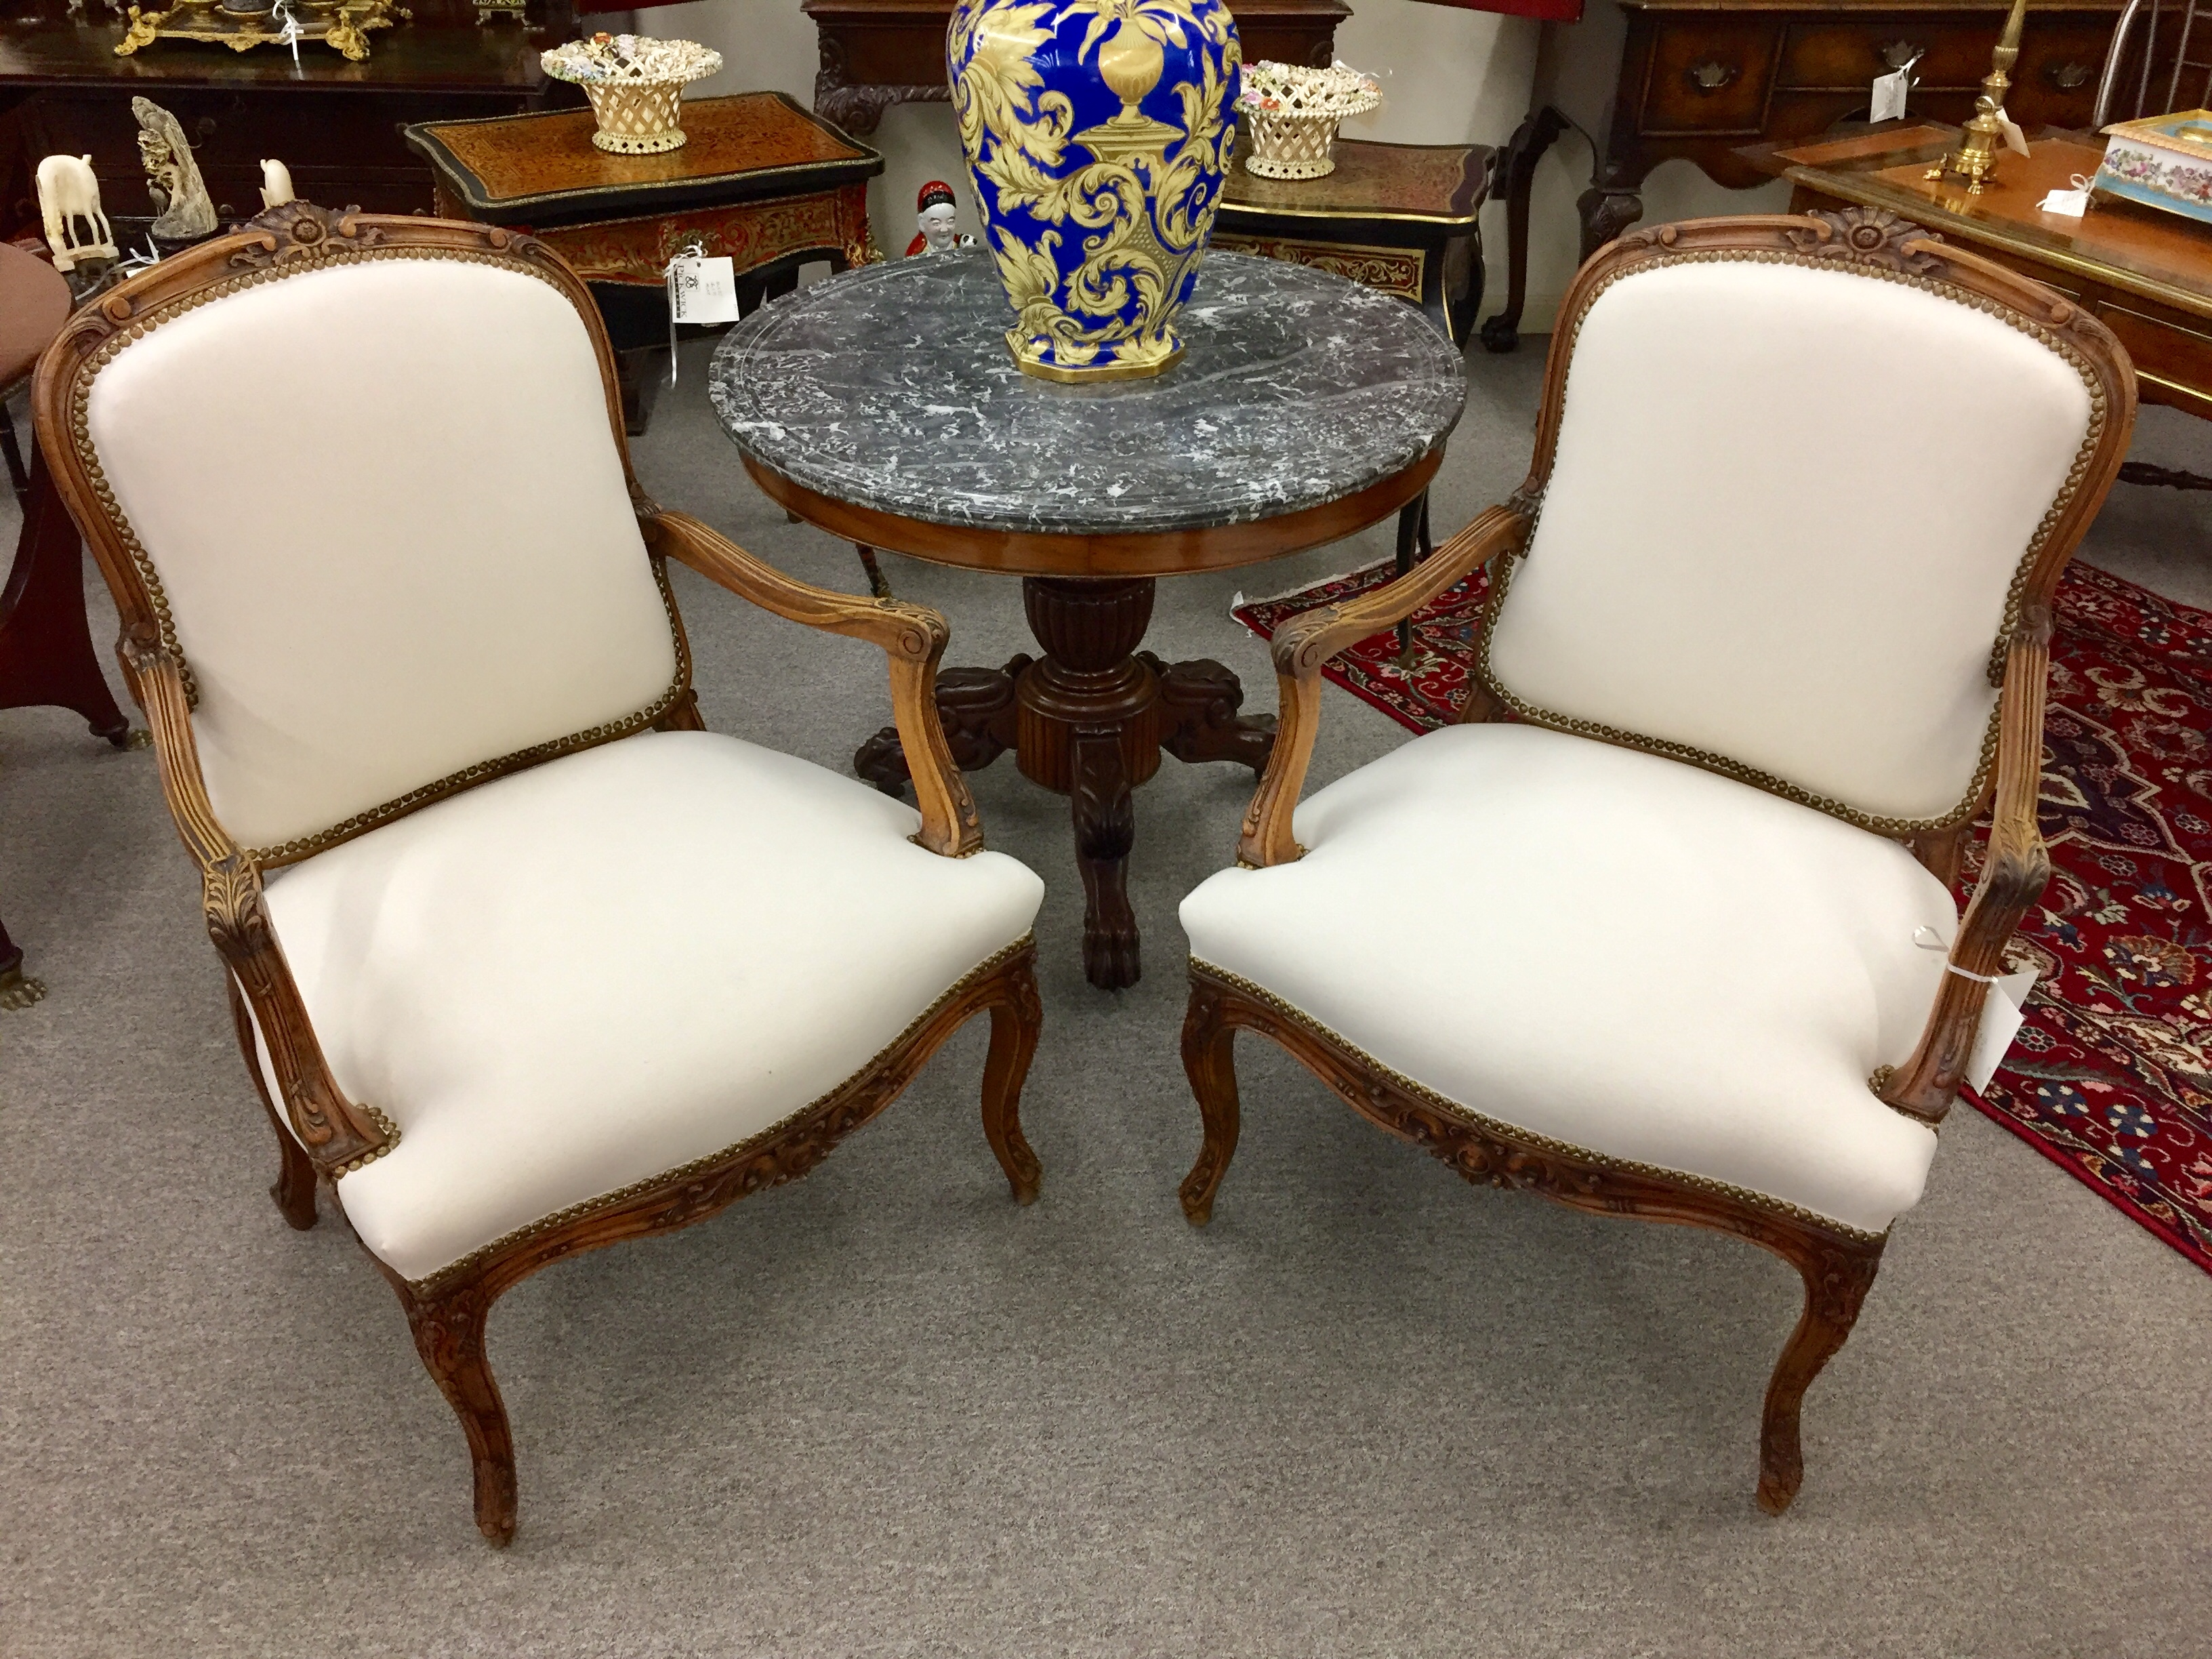 Pair of Provincial Louis XV Carved Walnut Fauteuils  (SOLD)